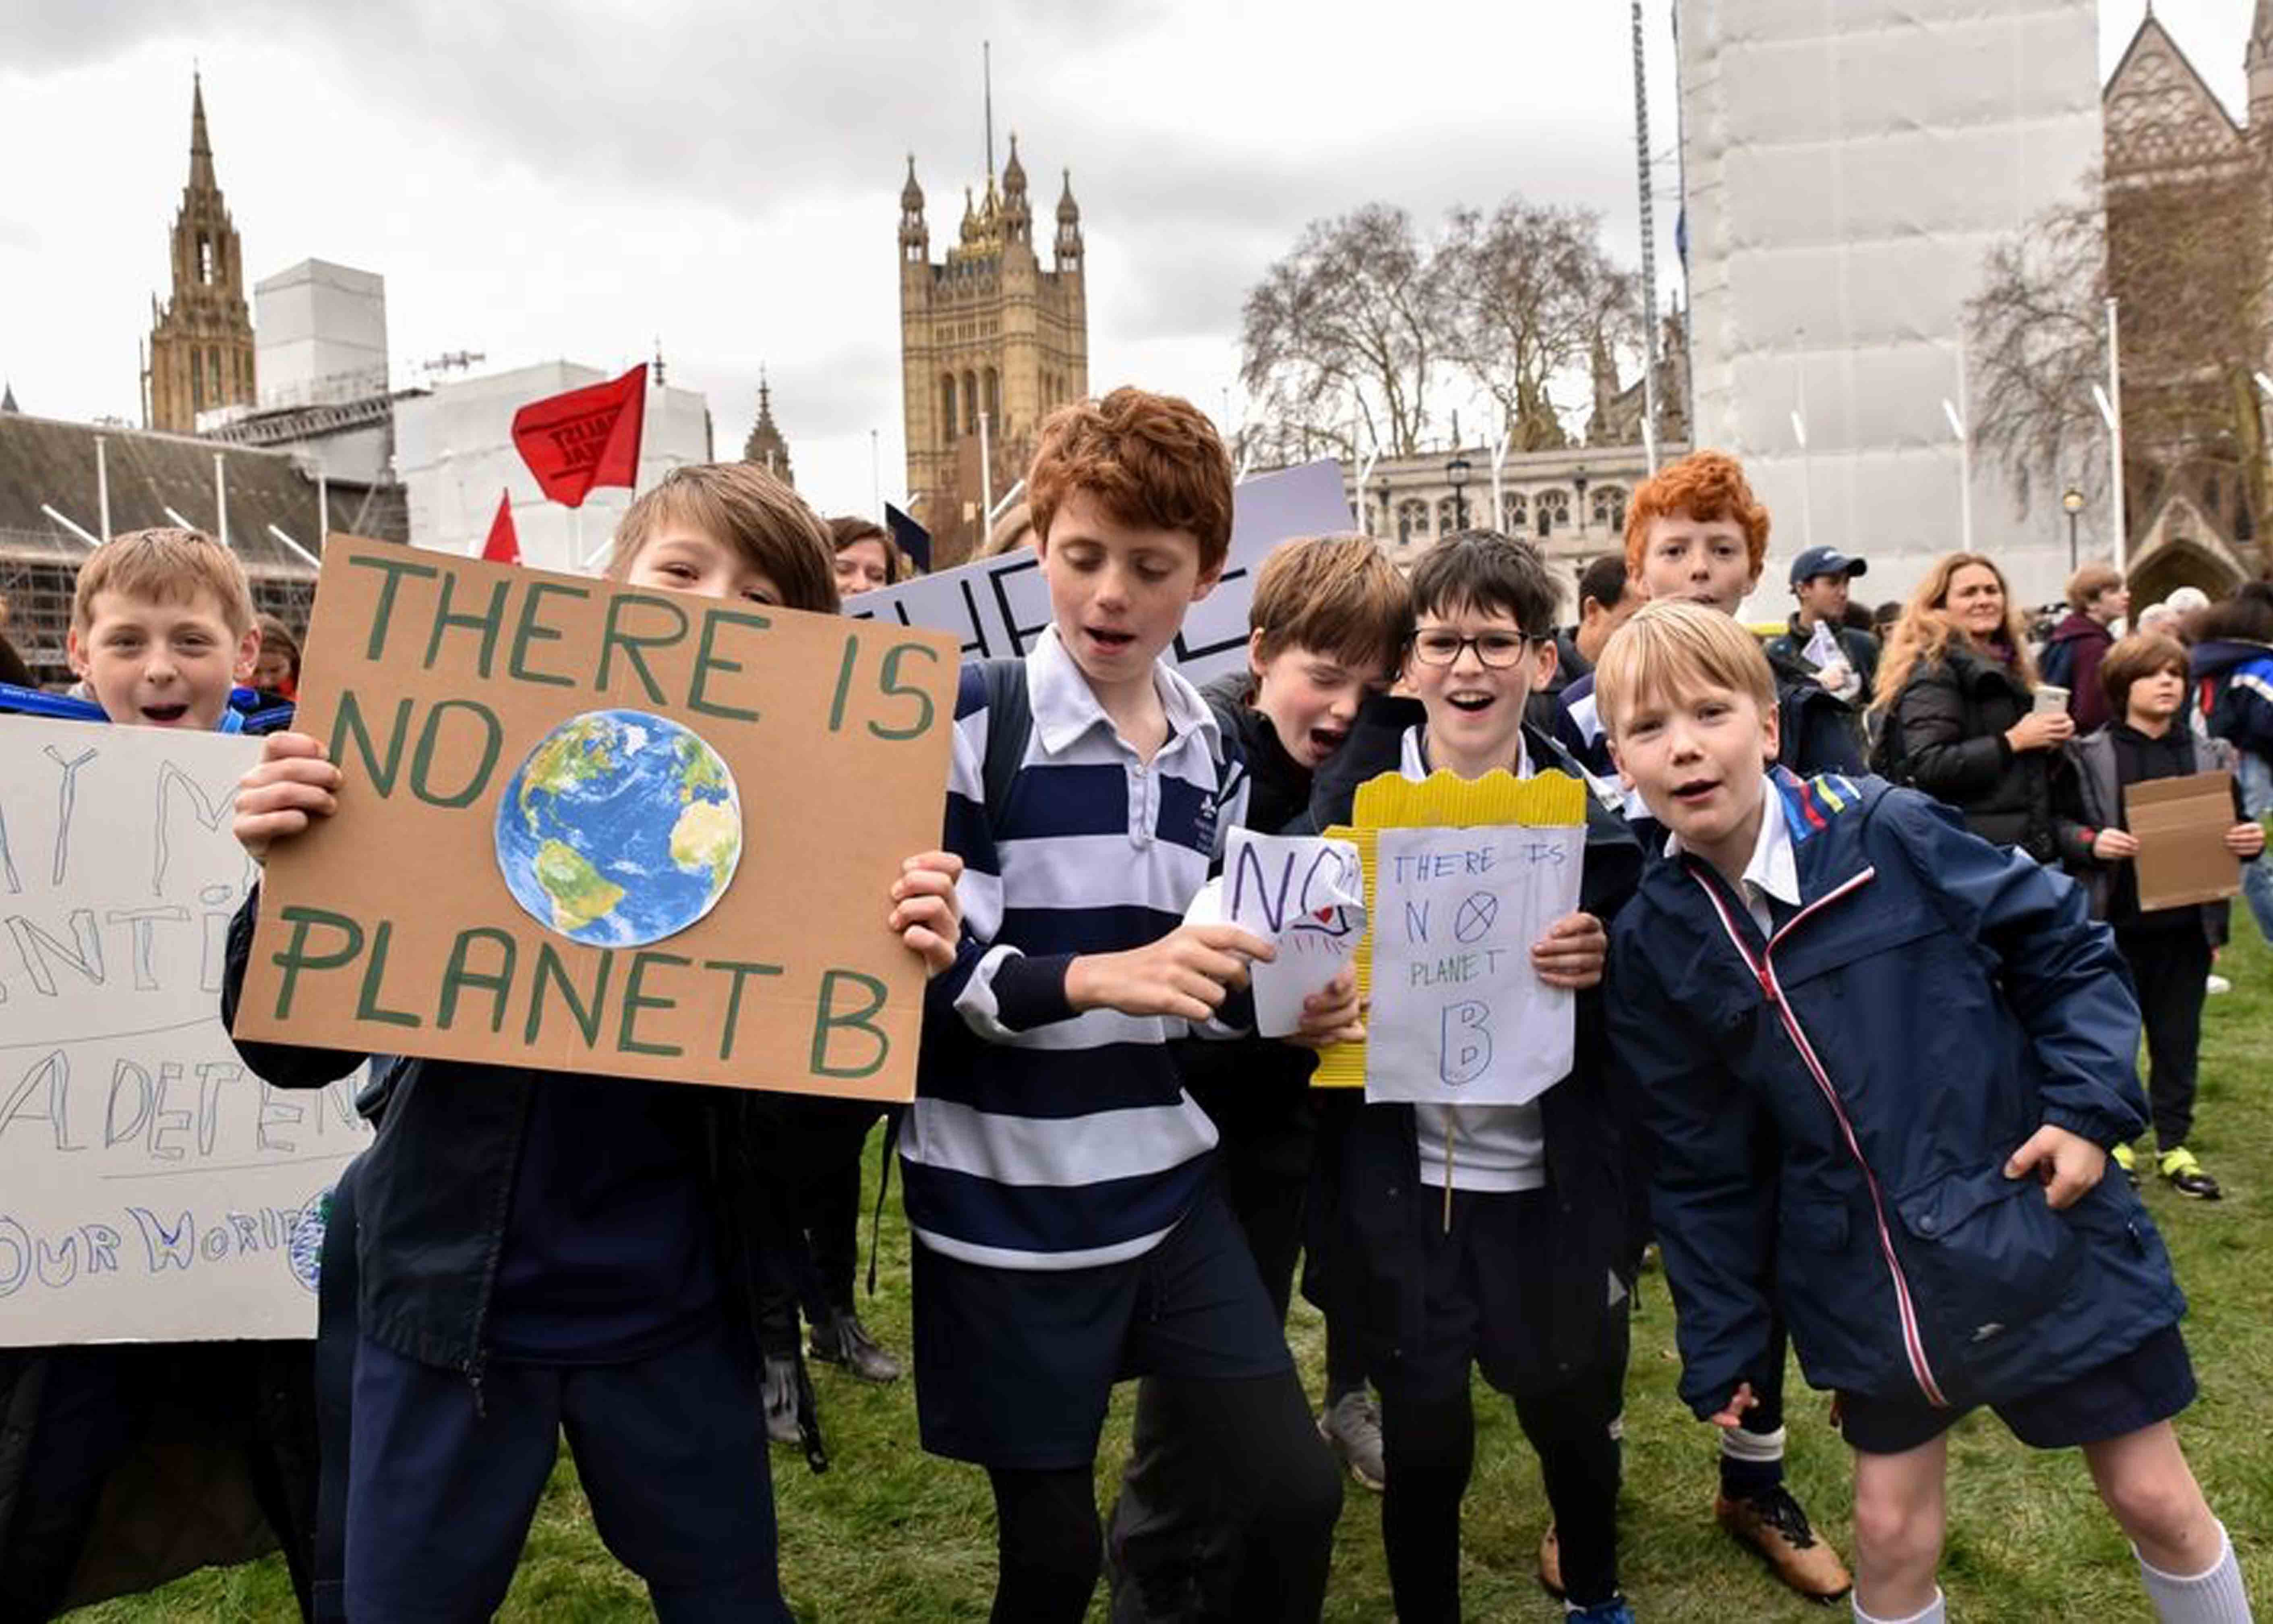 Children protesting for climate change